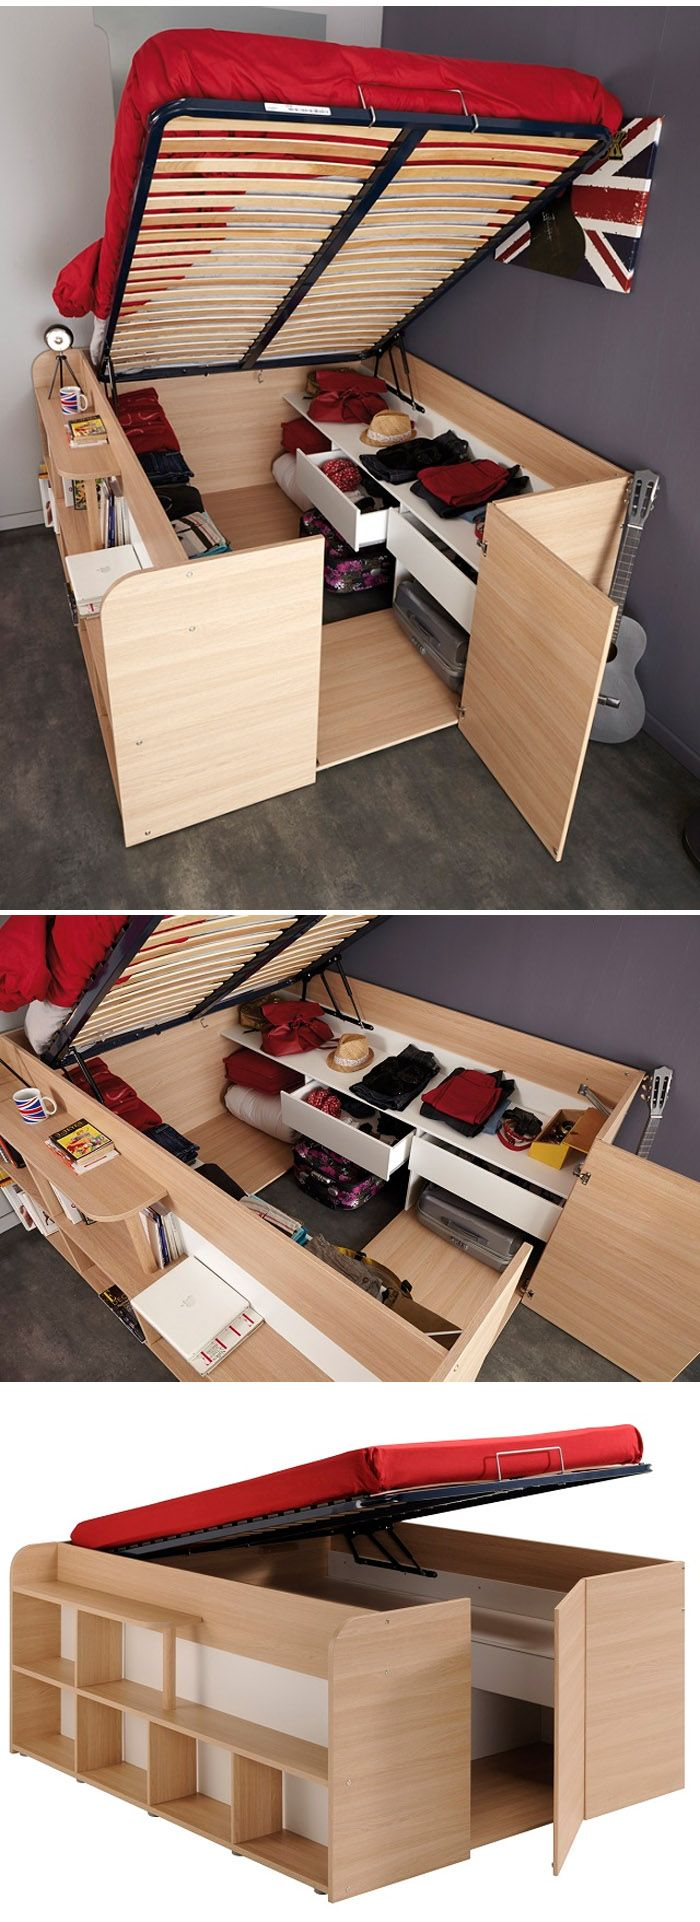 space-saver Space-Up Double Bed    http://www.goodshomedesign.com/space-up-double-bed/